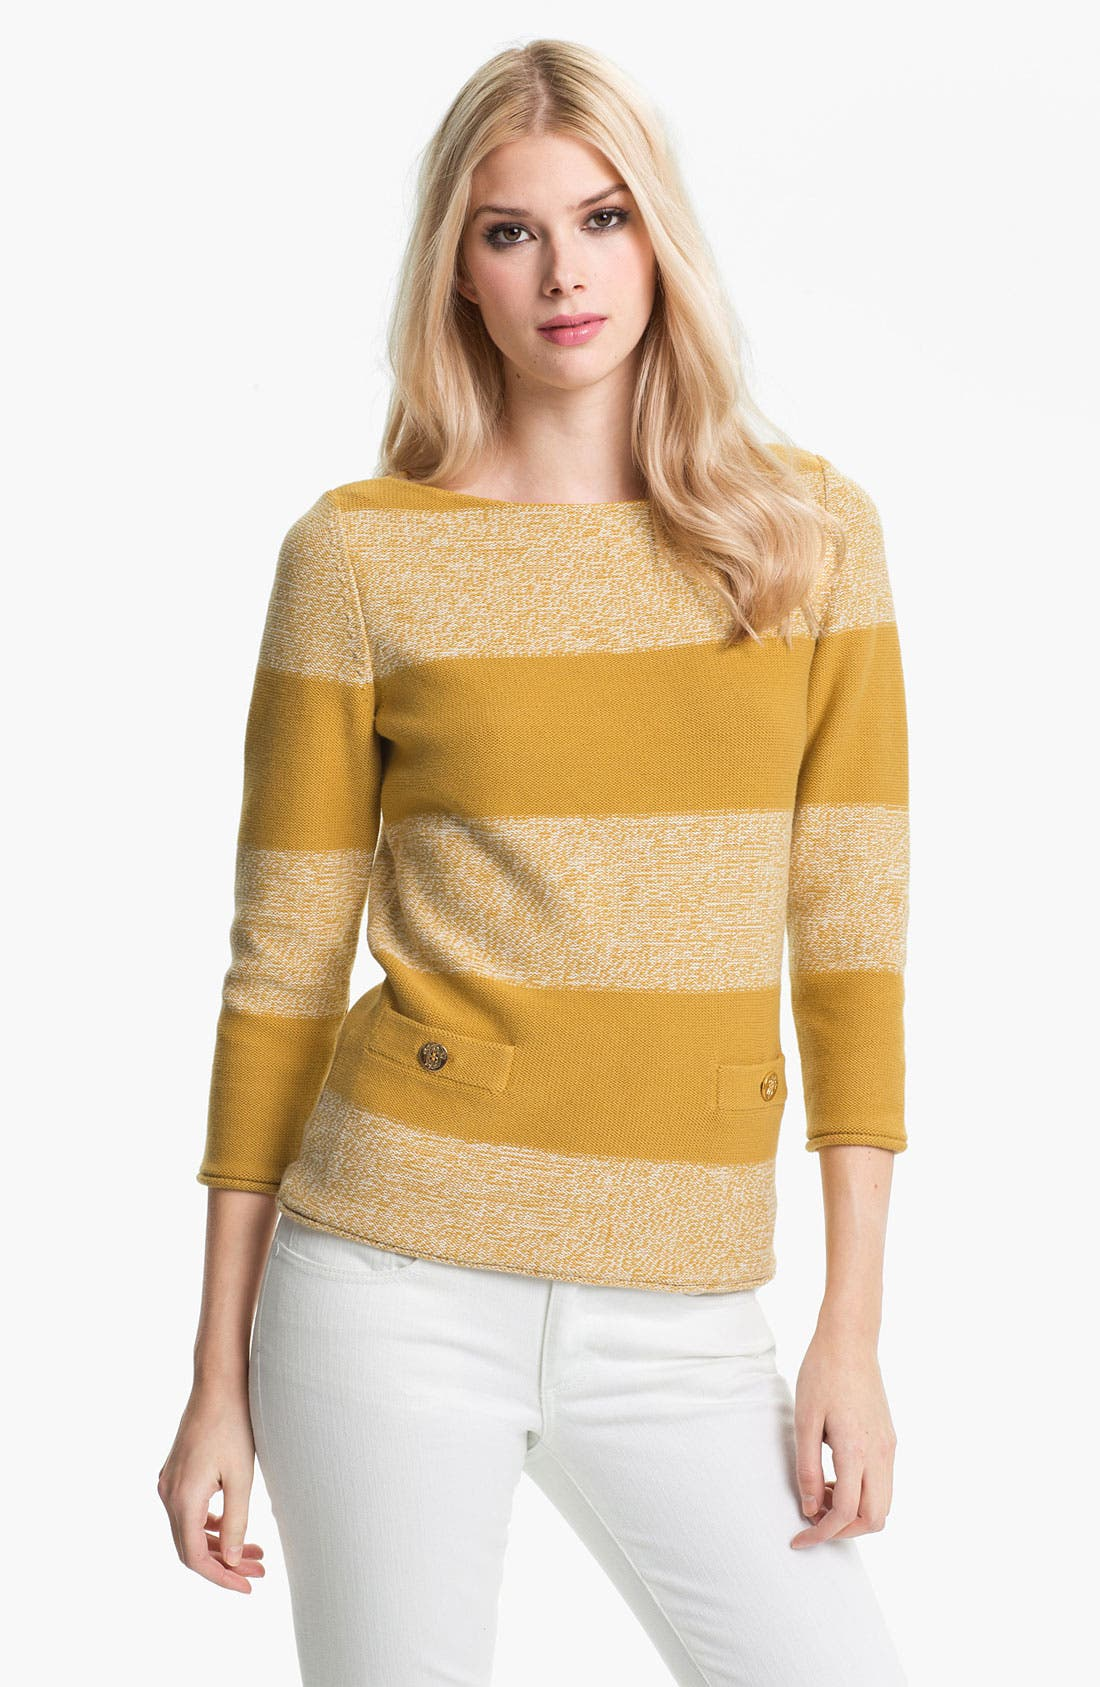 Main Image - Tory Burch 'Becky' Sweater